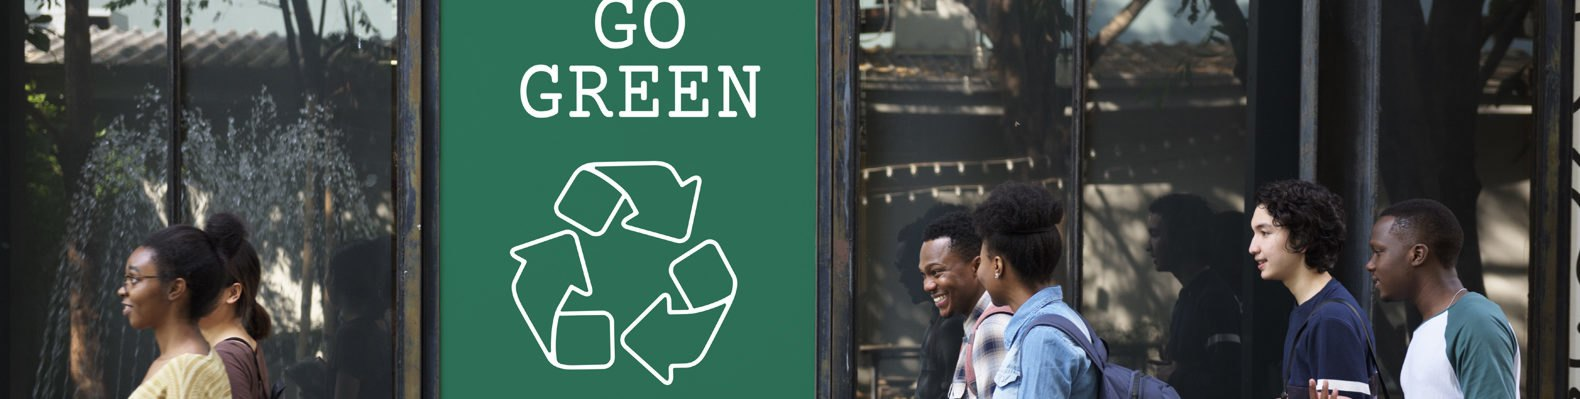 """people walking by sign that reads """"Go Green"""""""